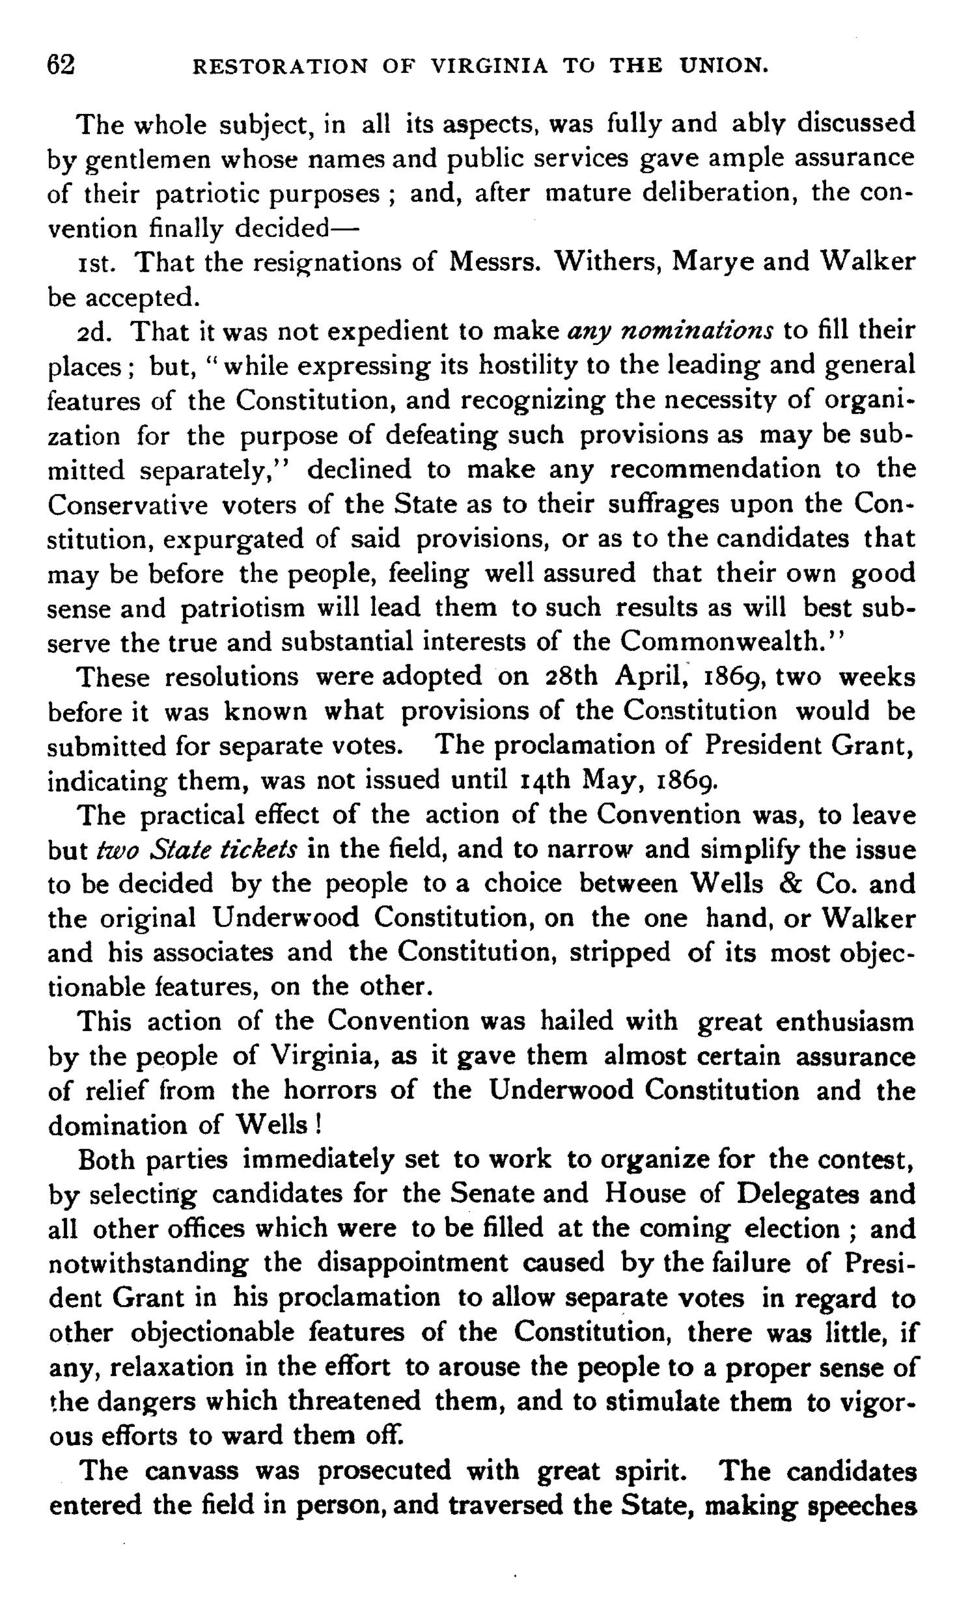 """A narrative of the leading incidents of the organization of the first popular movement in Virginia in 1865 to re-establish peaceful relations between the northern and southern states, and the subsequent efforts of the """"Committee of nine,"""" in 1869, to secure the restoration of Virginia to the Union,"""